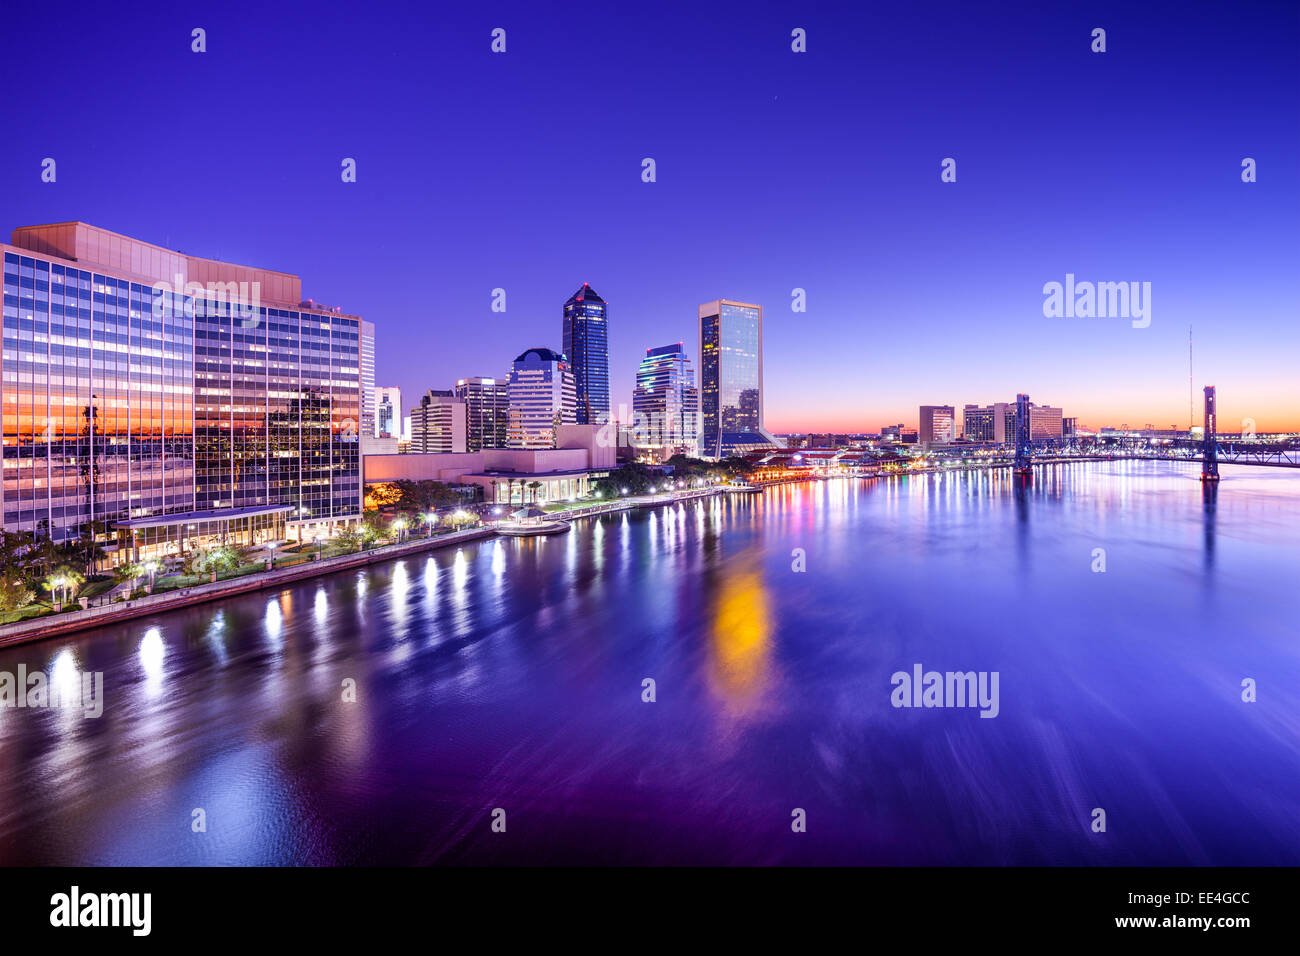 Jacksonville, Florida, USA city skyline on St. Johns River at dawn. - Stock Image